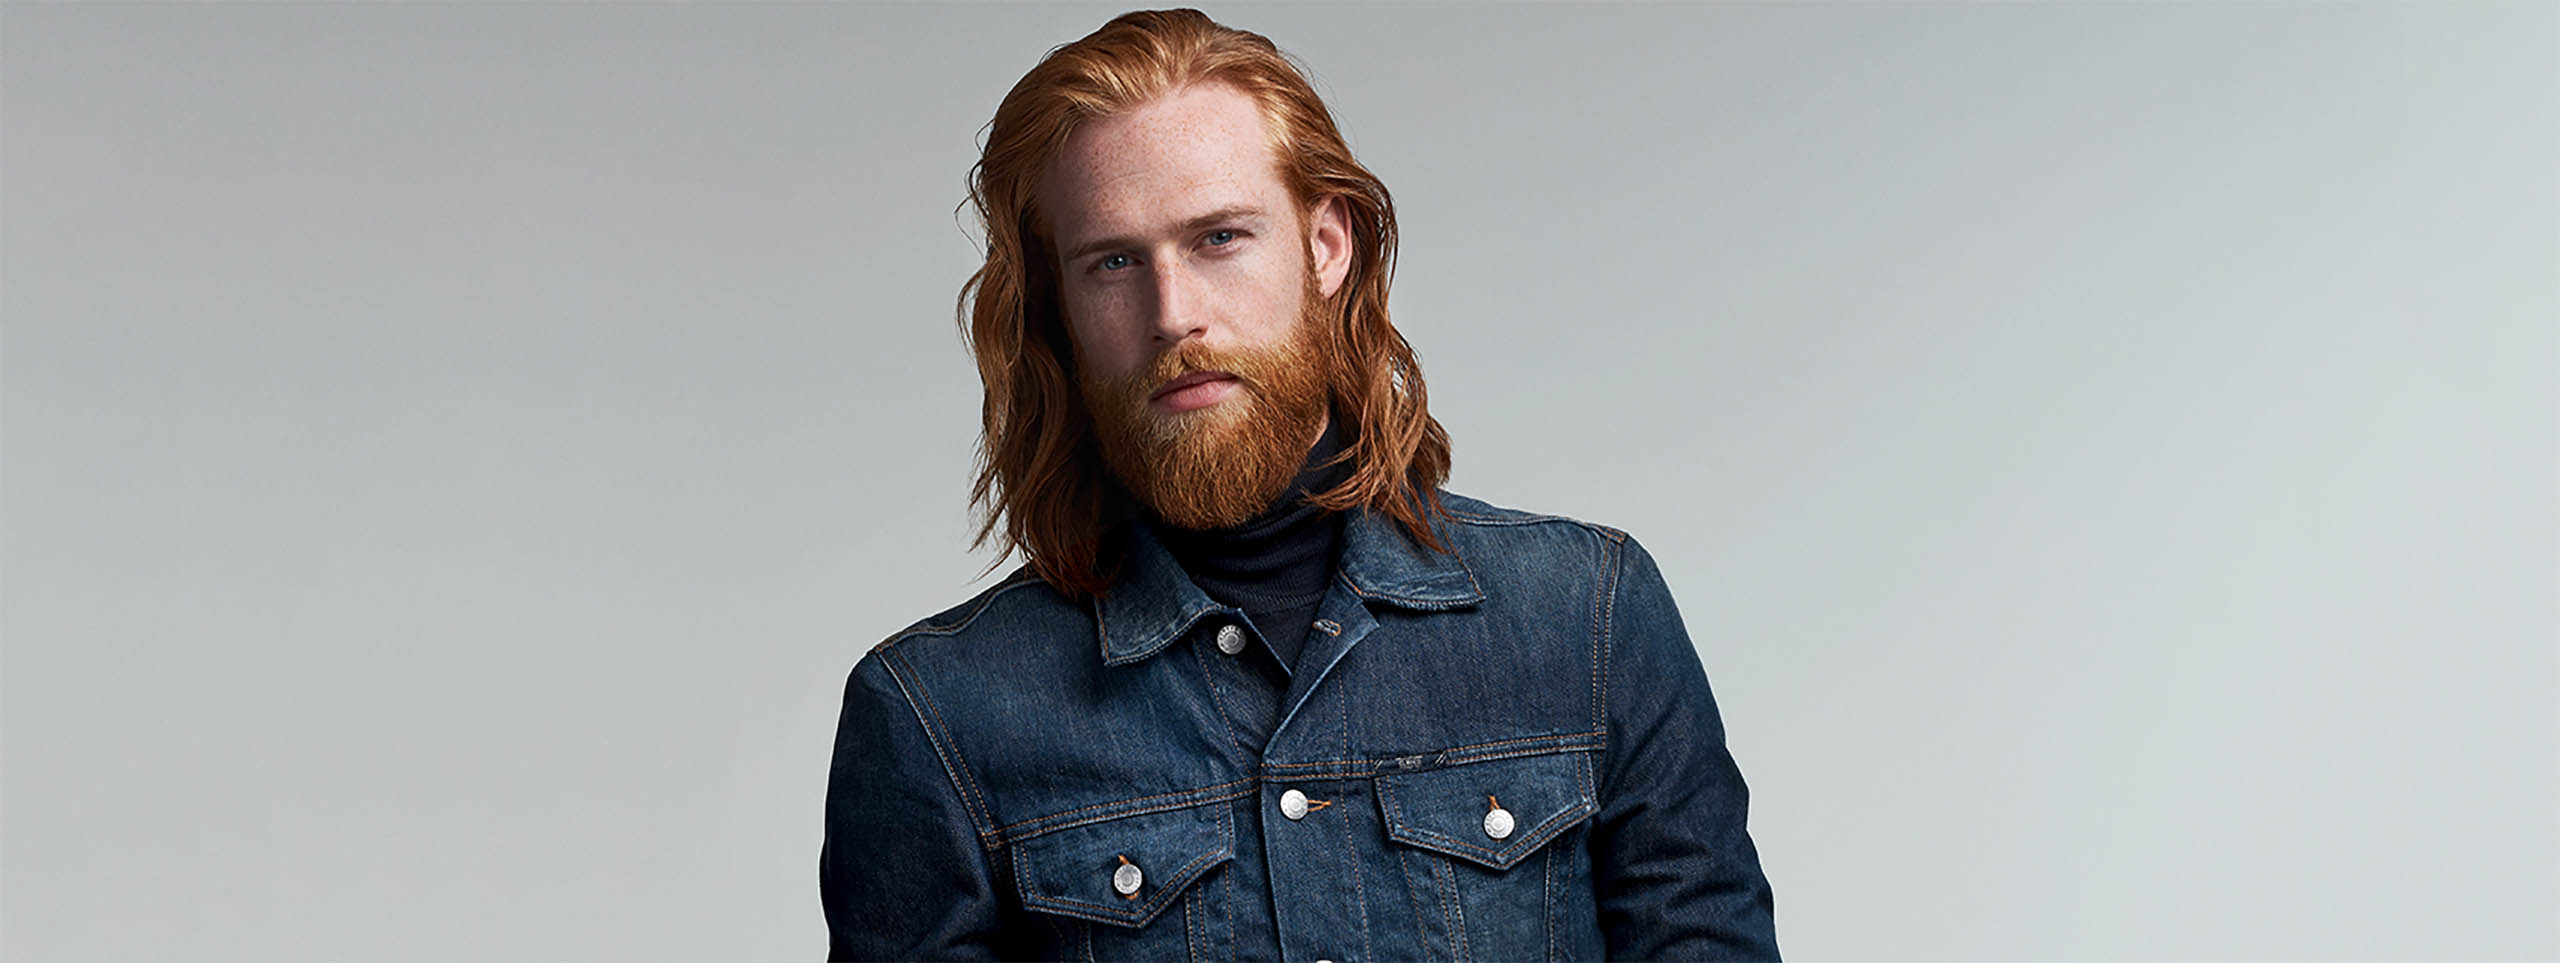 Male model with long hair.